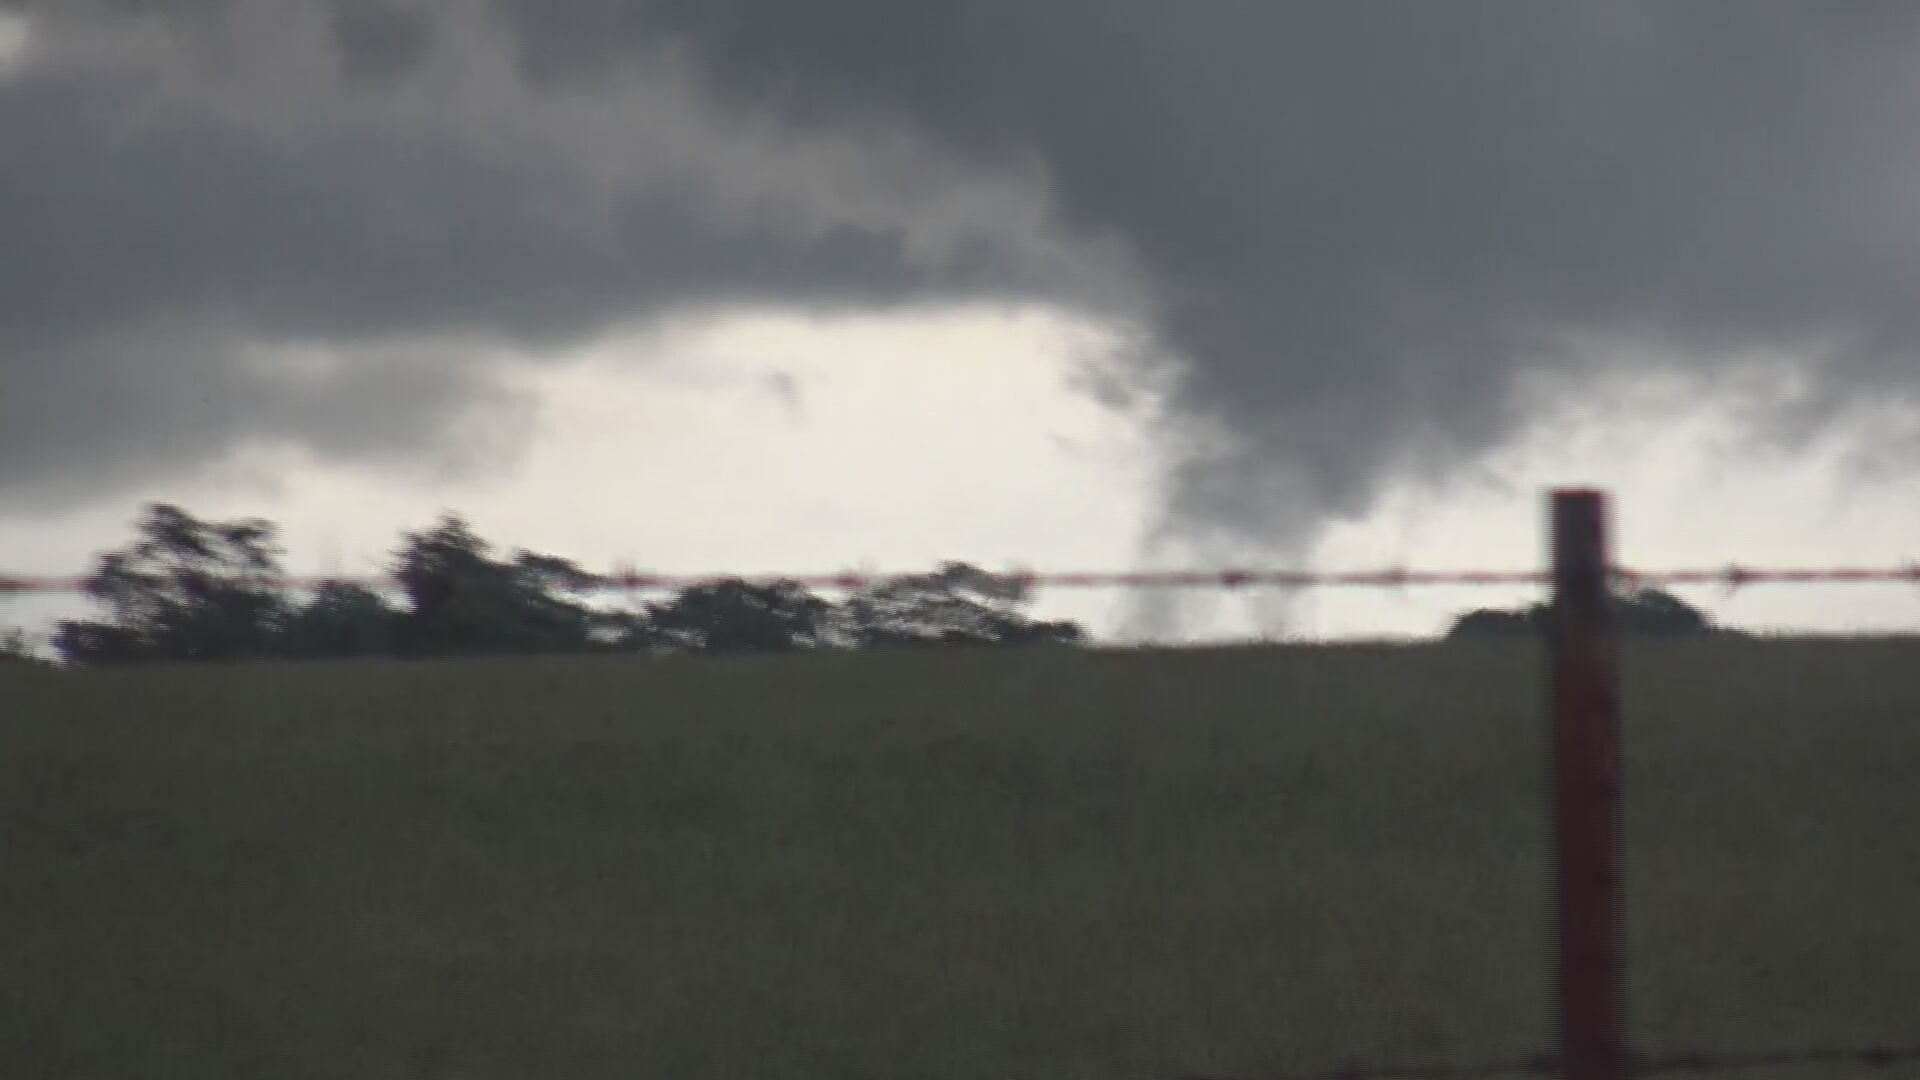 WATCH: Tornado Touches Down Northwest Of Siloam Springs